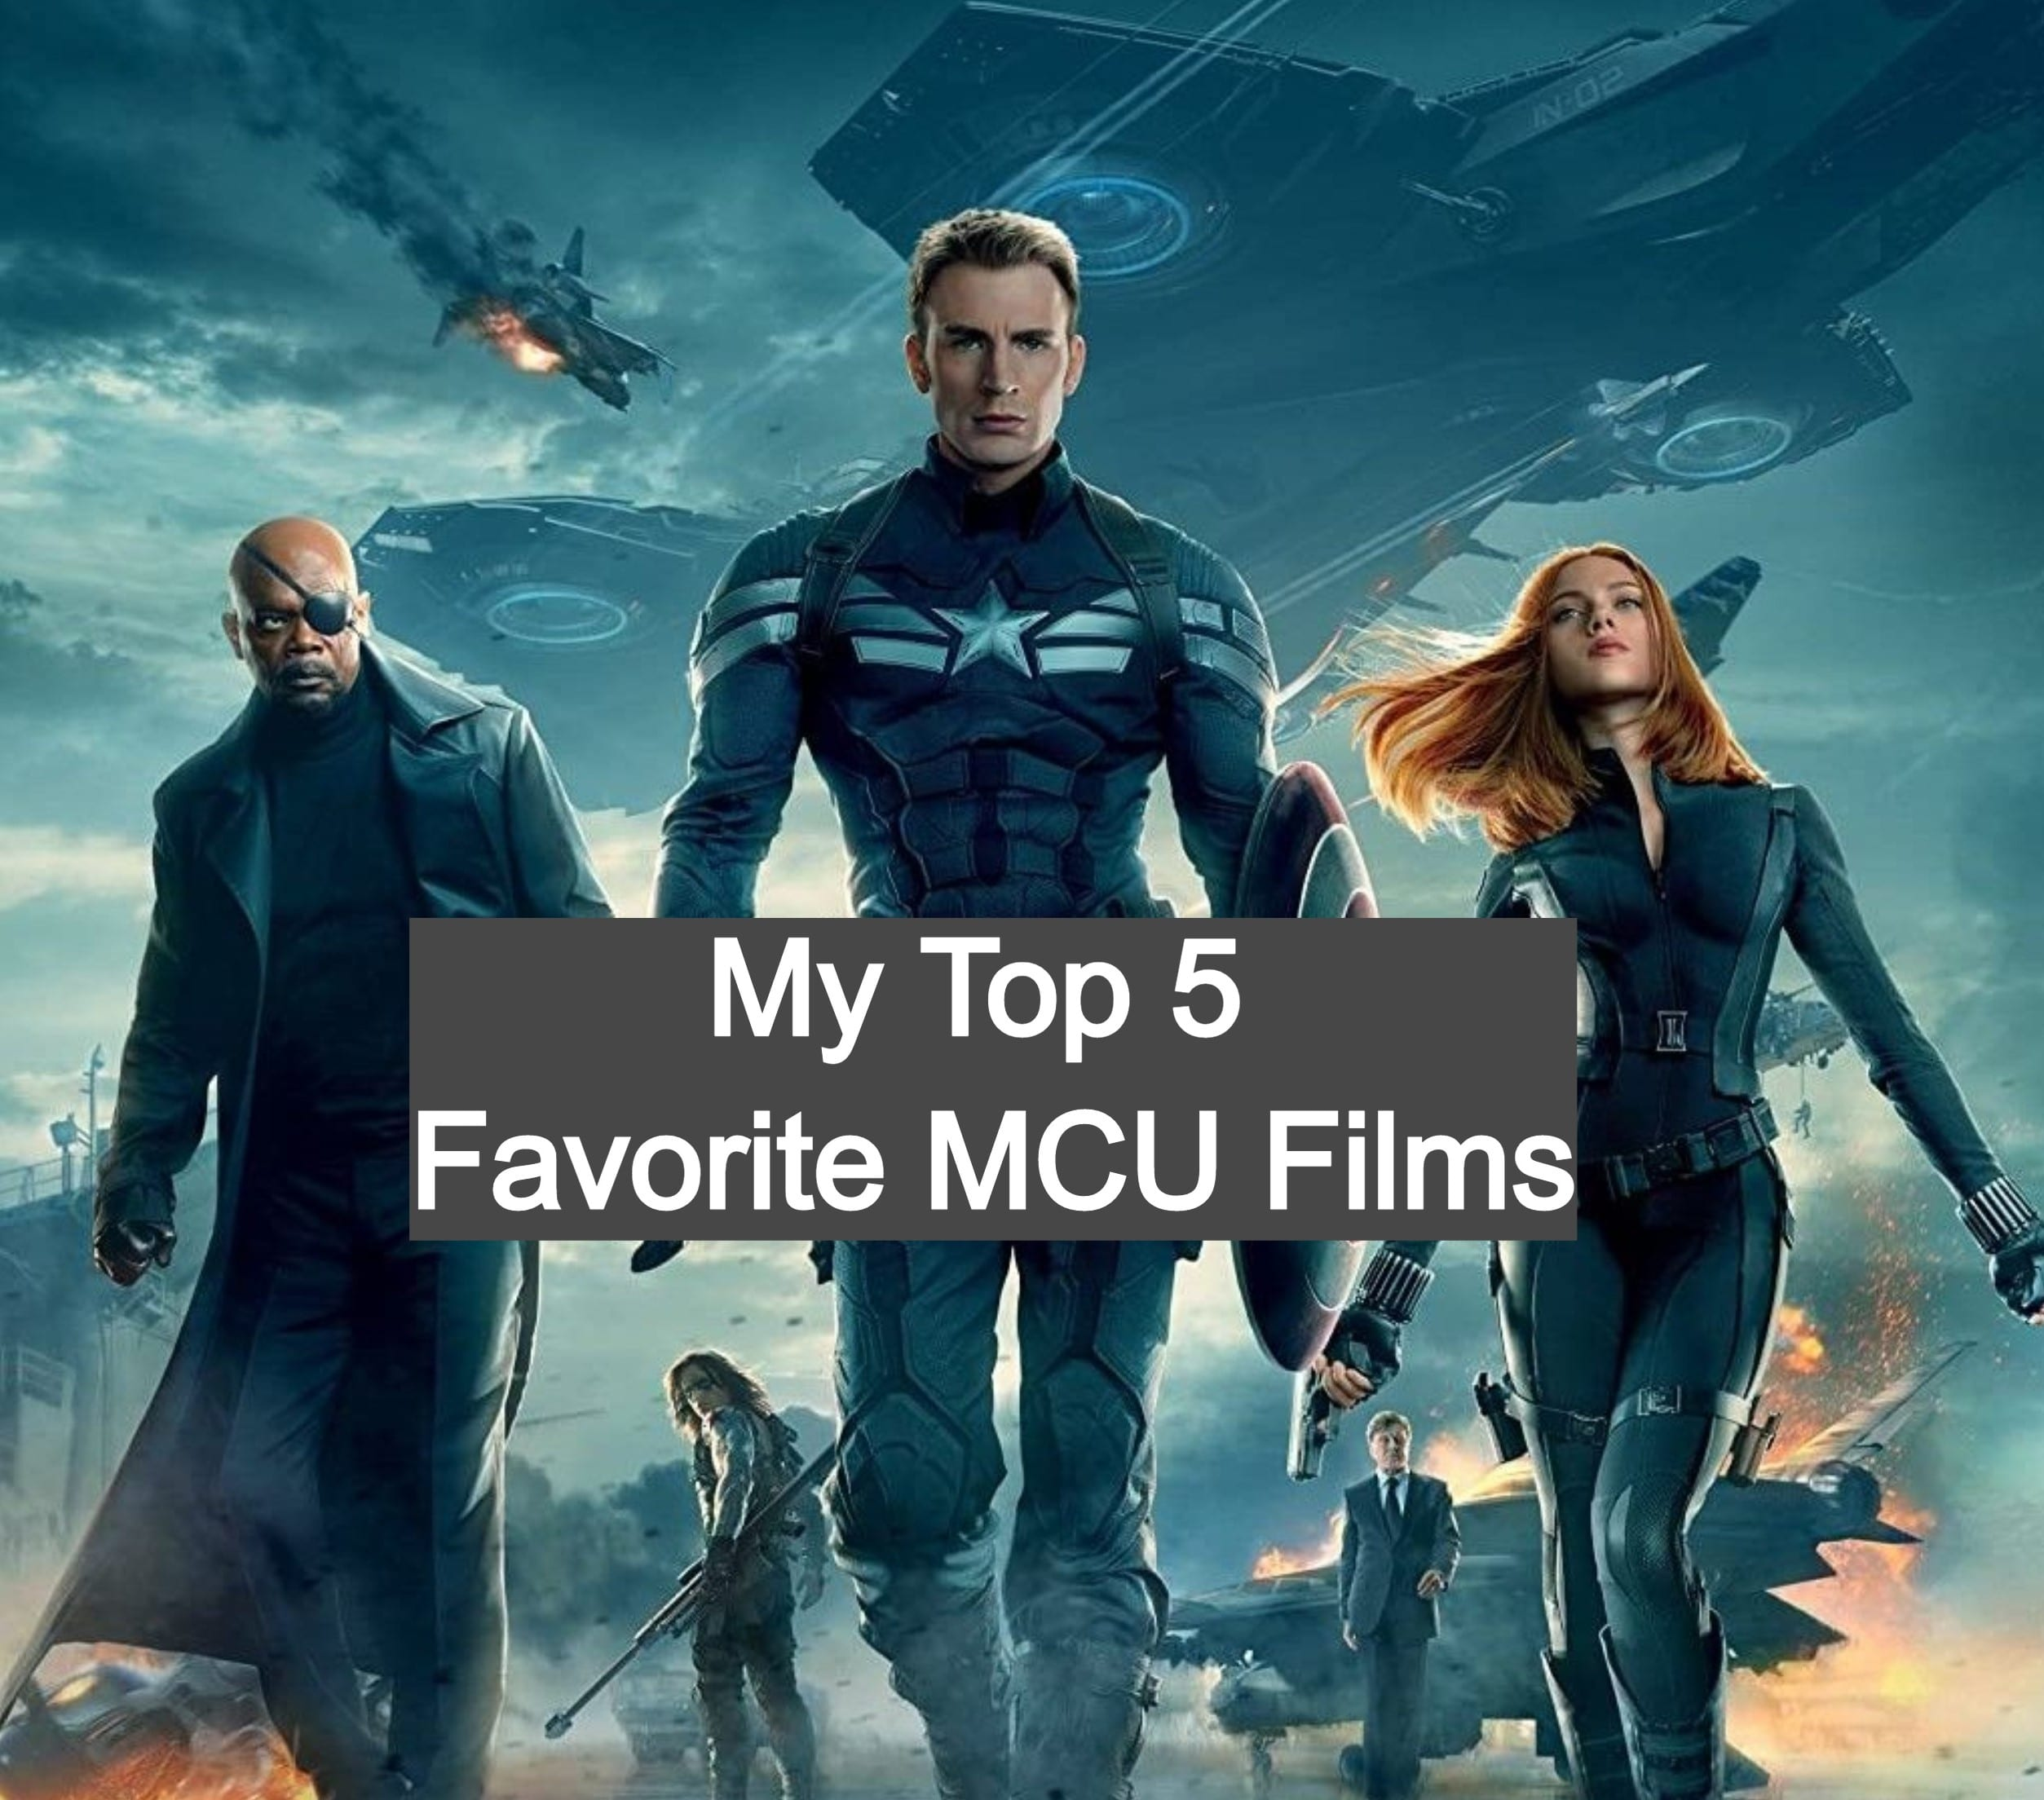 My Top 5 Favorite MCU Films